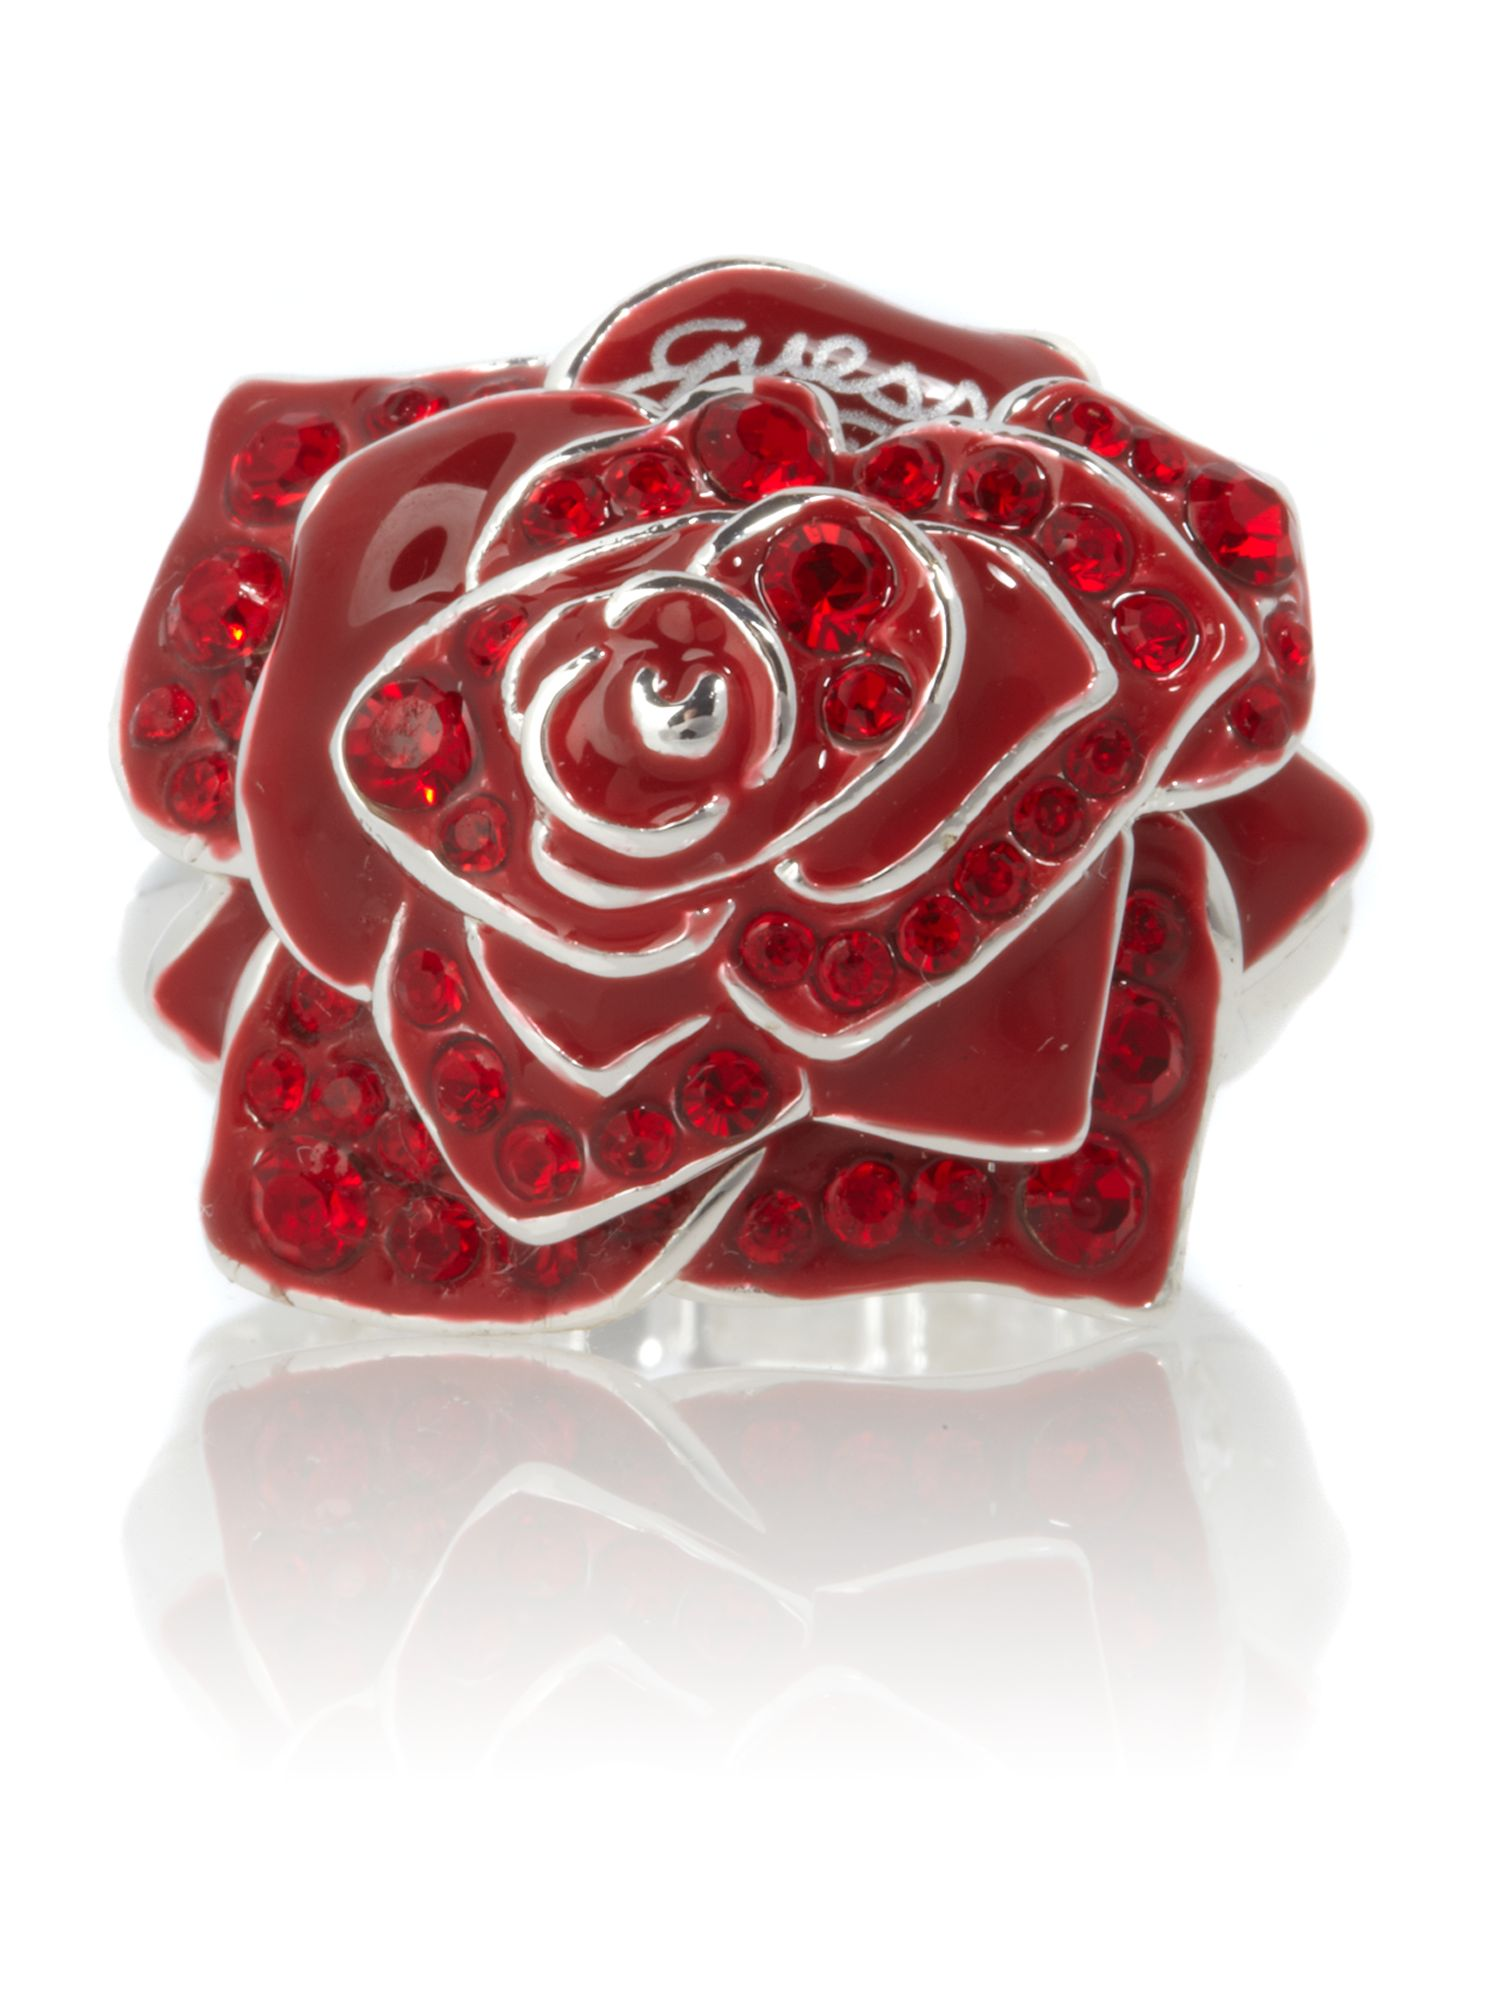 Guess Red Rose Ring, Silver